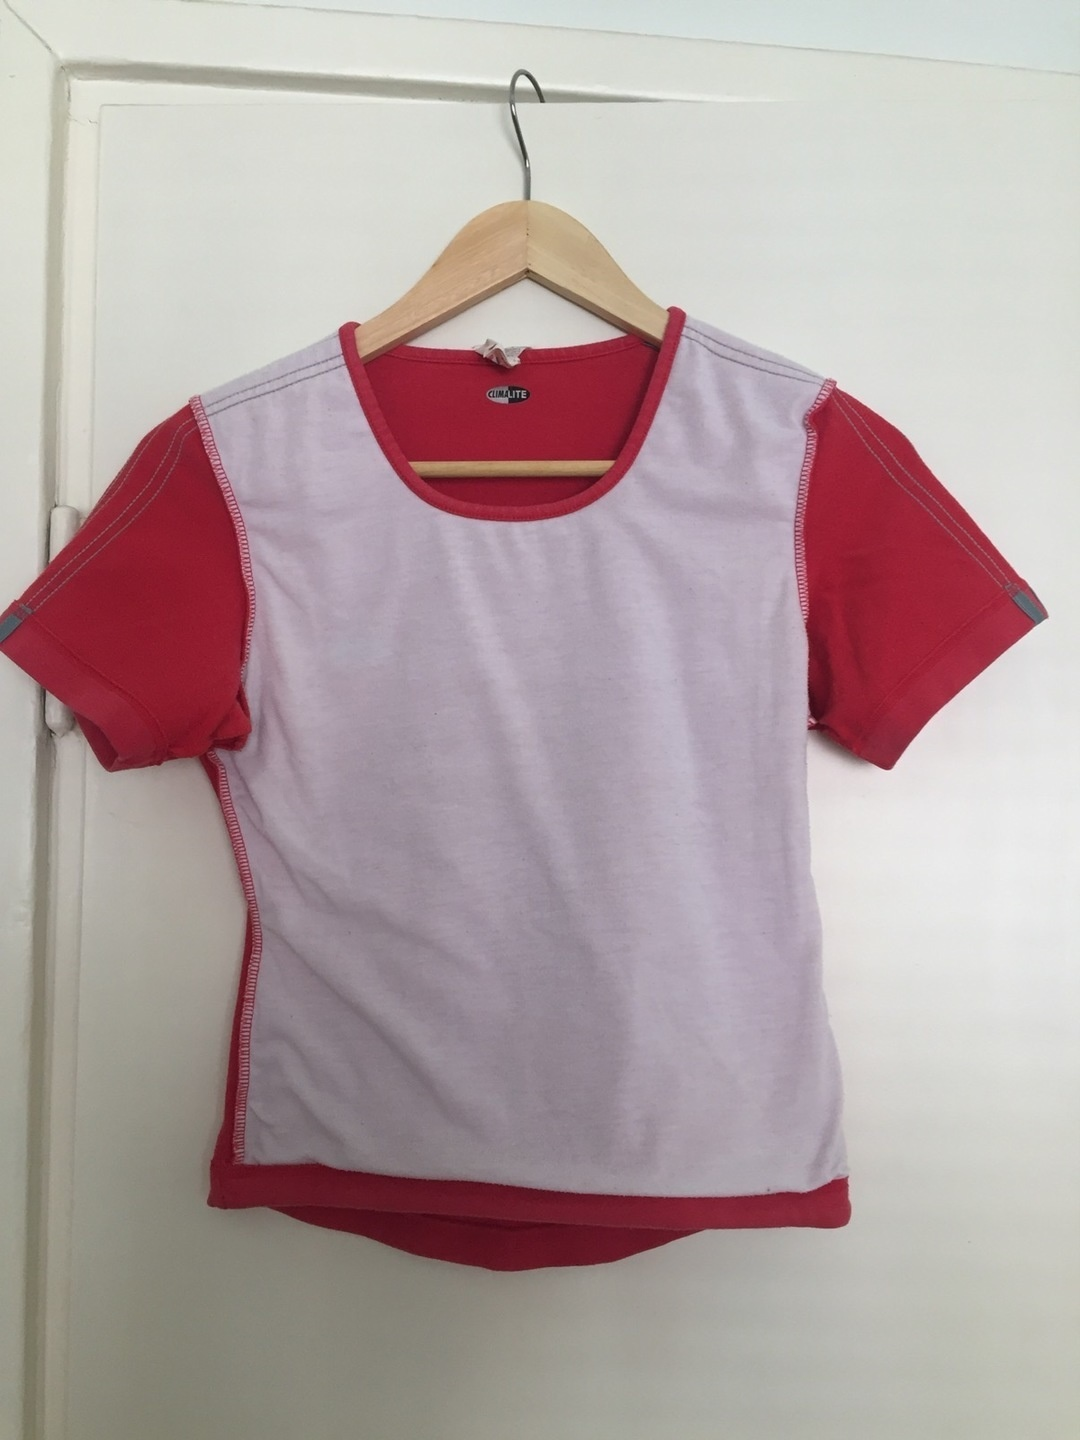 Damers toppe og t-shirts - ADIDAS photo 3